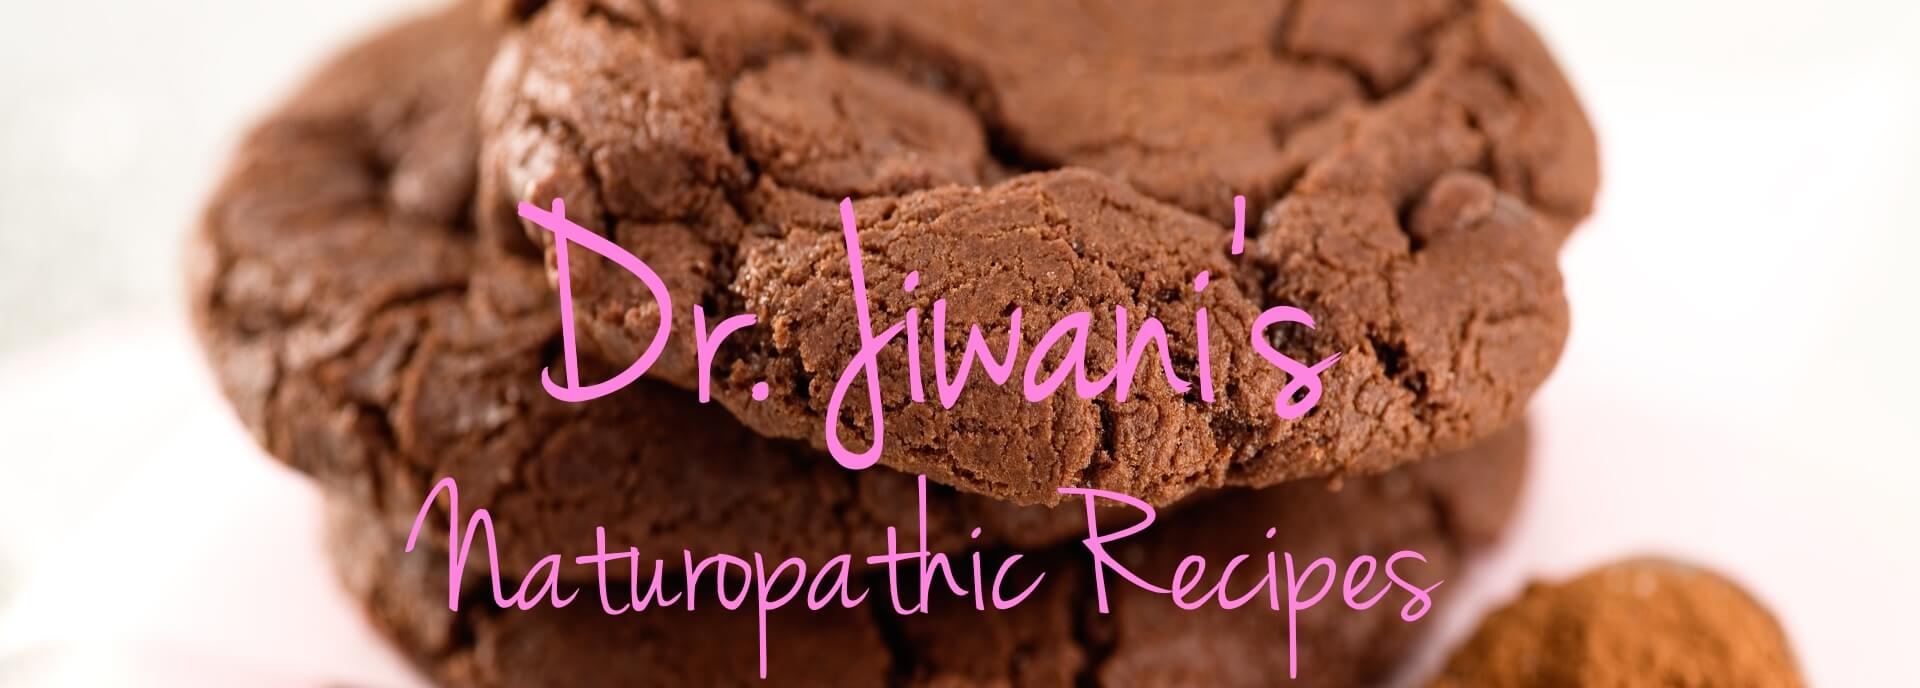 Dr. Jiwani's Naturopathic Medical Blog | Dr. Jiwani's Naturopathic Nuggets Blog